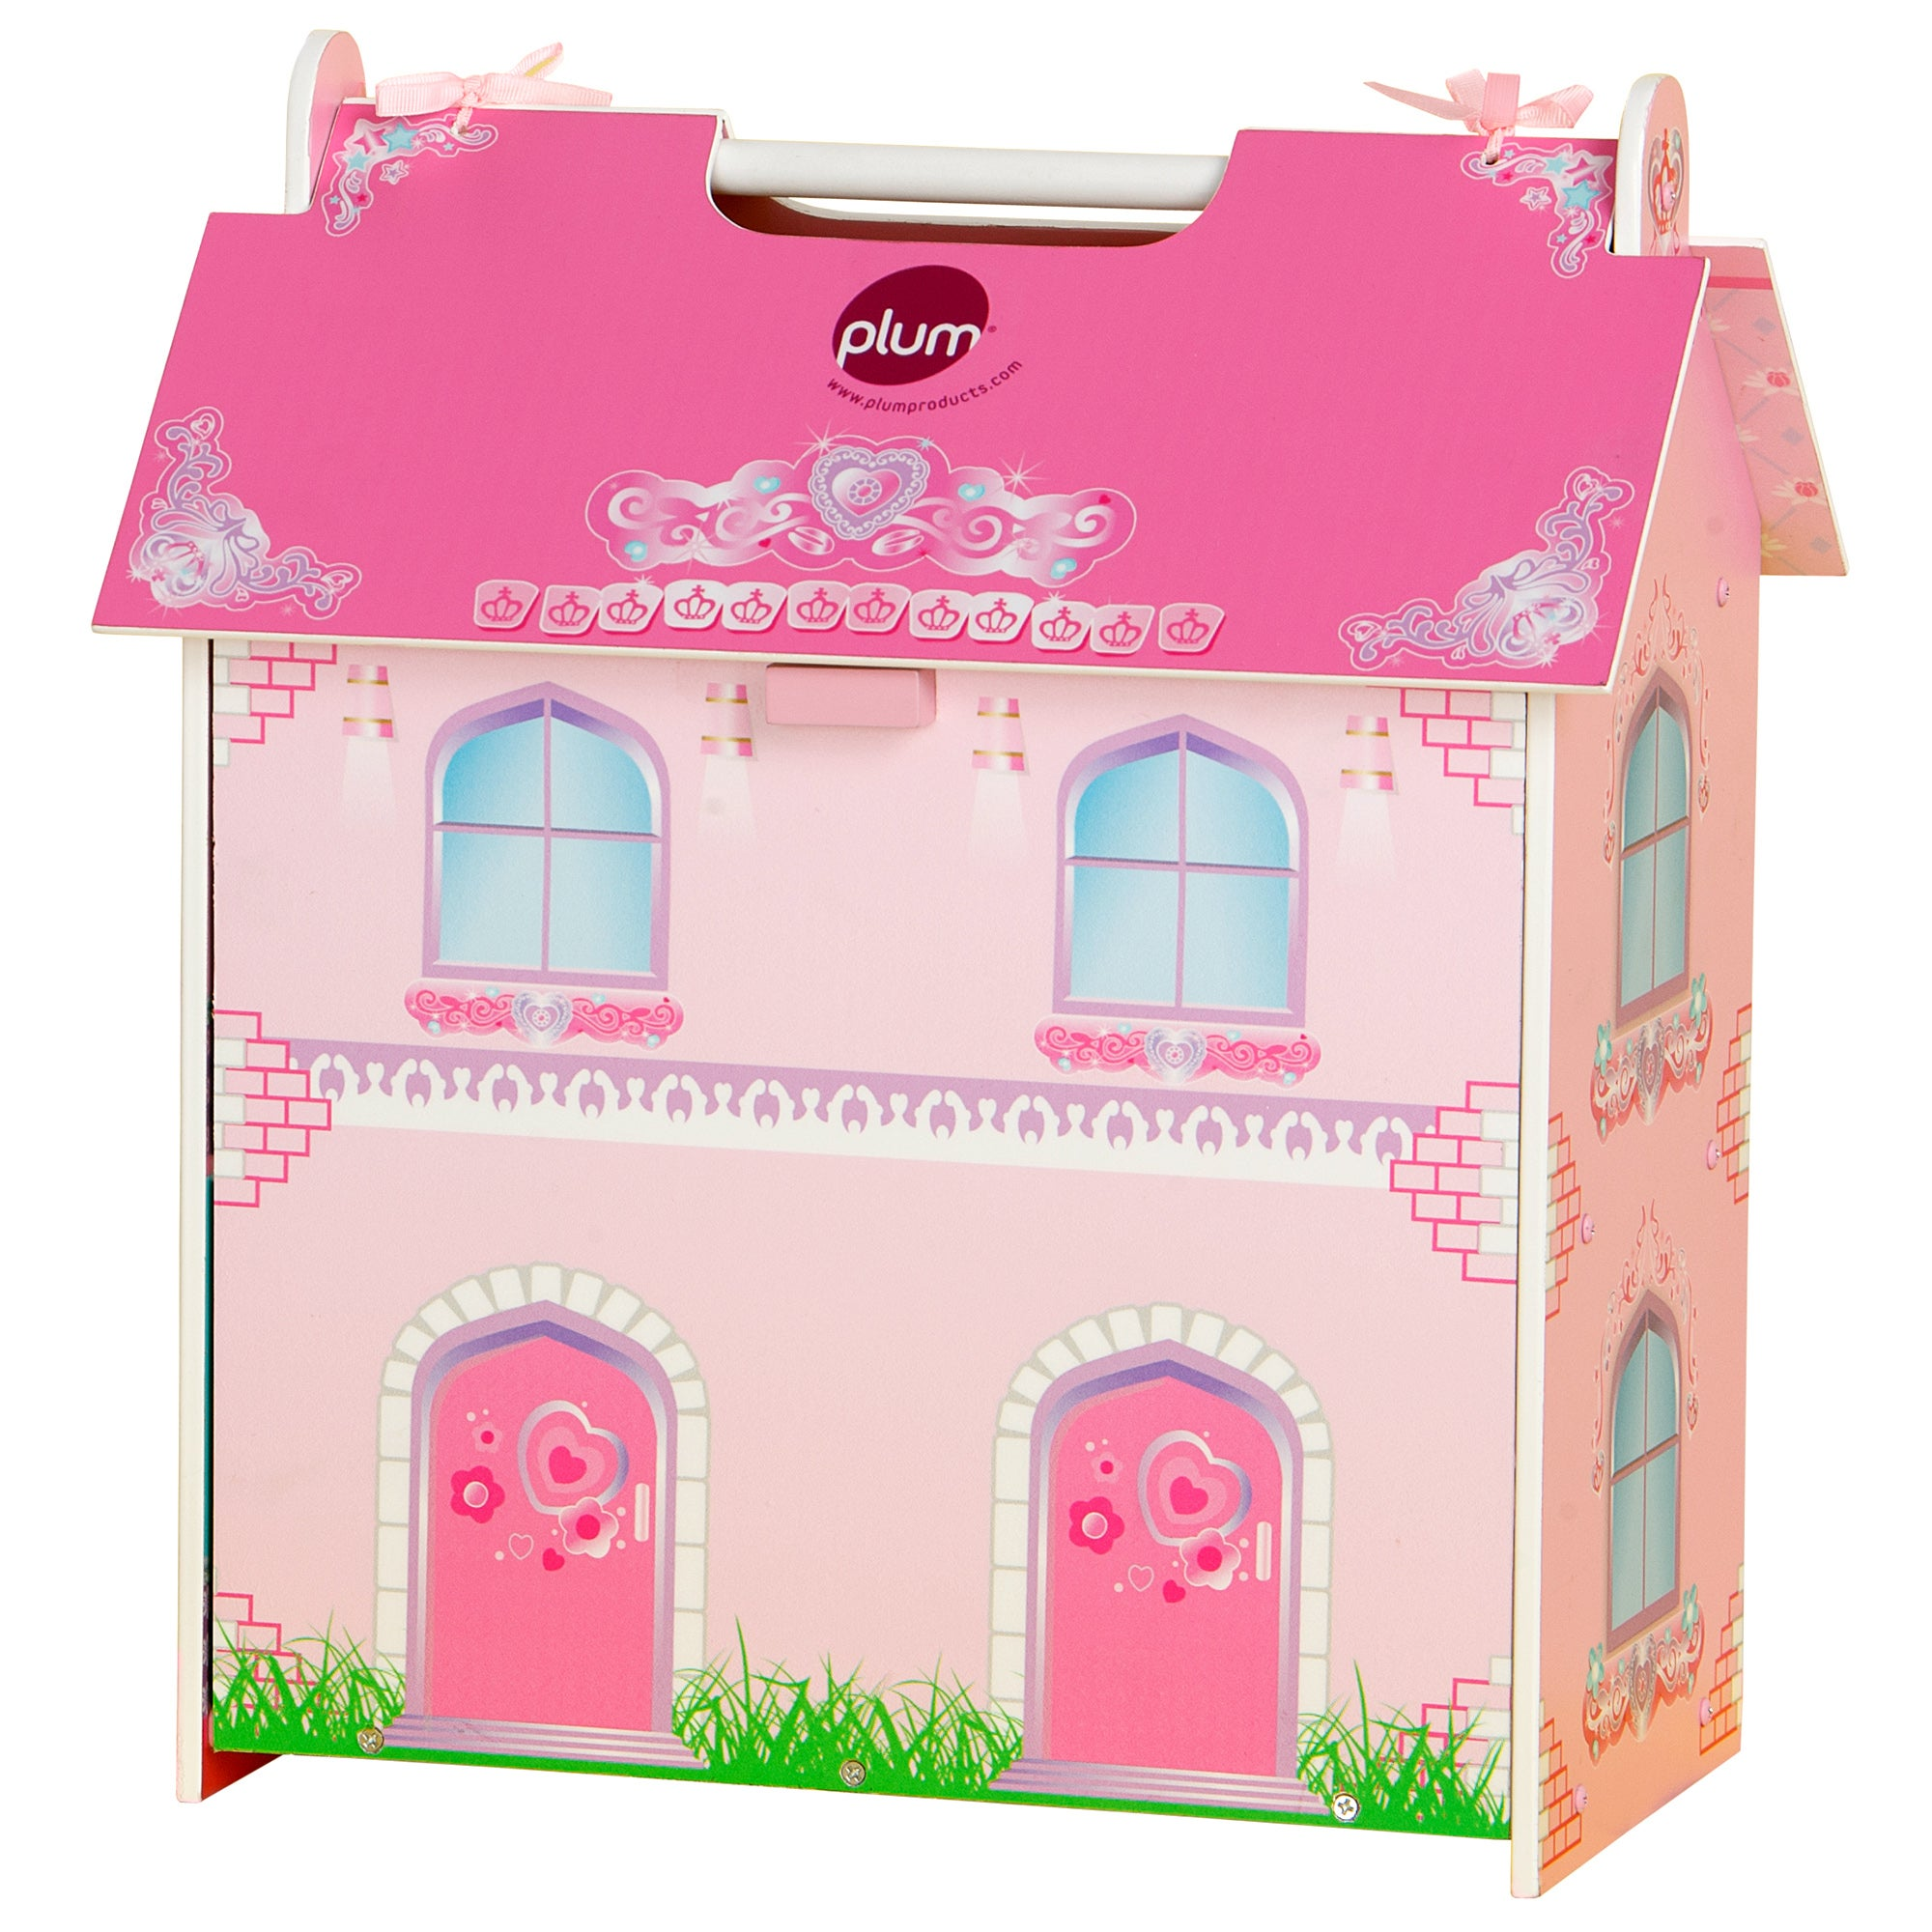 Plum Hove Dolls House